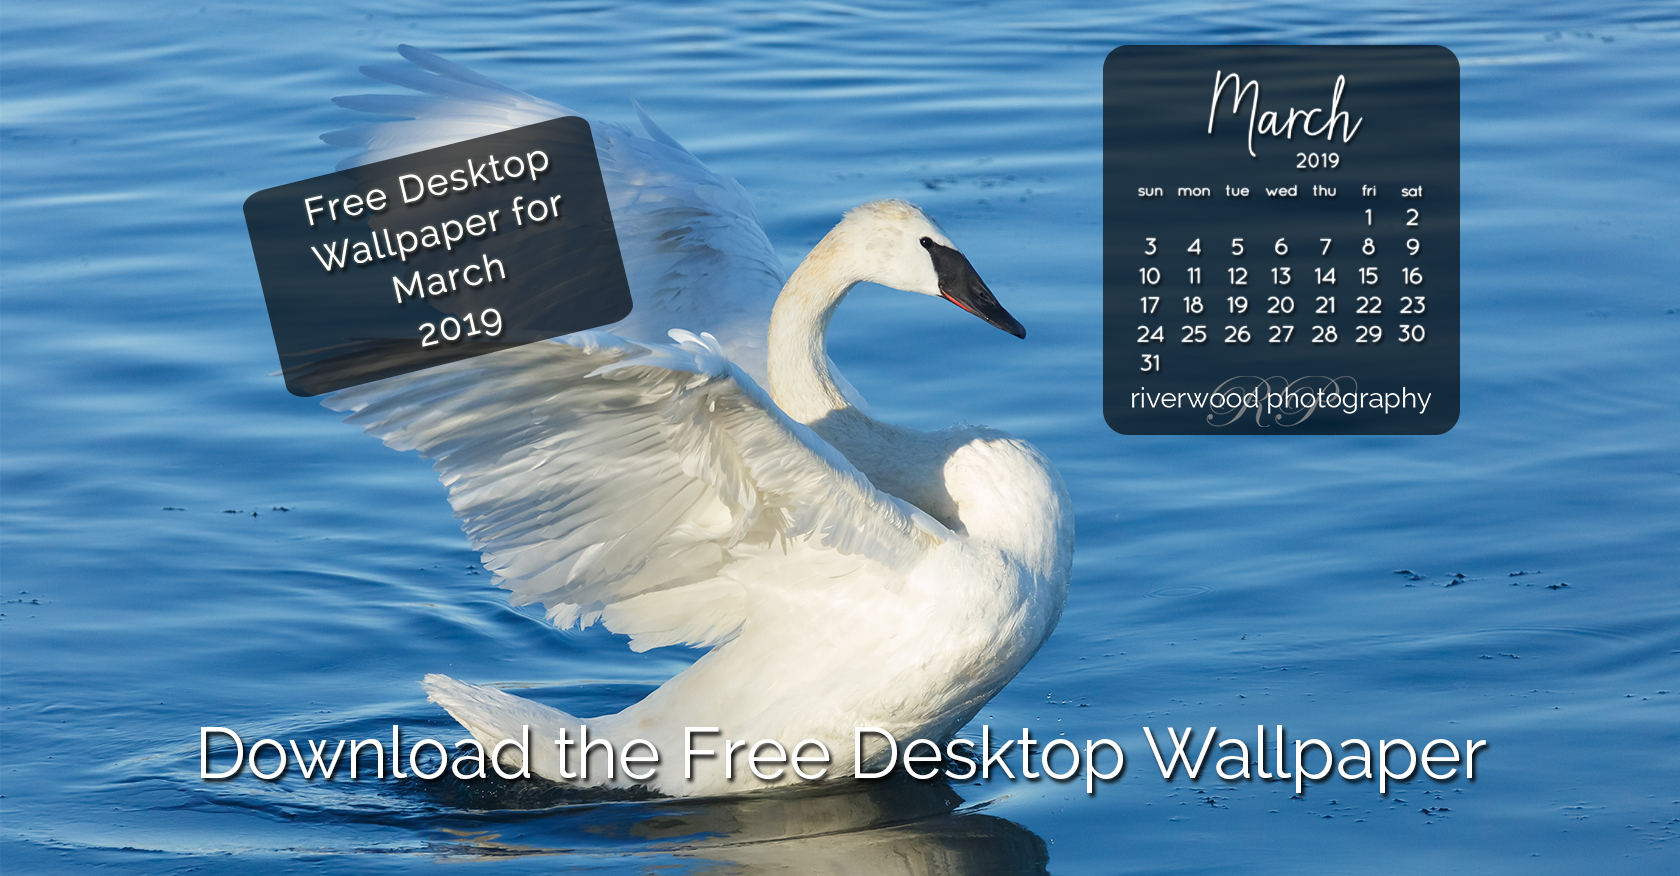 Free Desktop Wallpaper for March 2019 – Trumpeter Swan